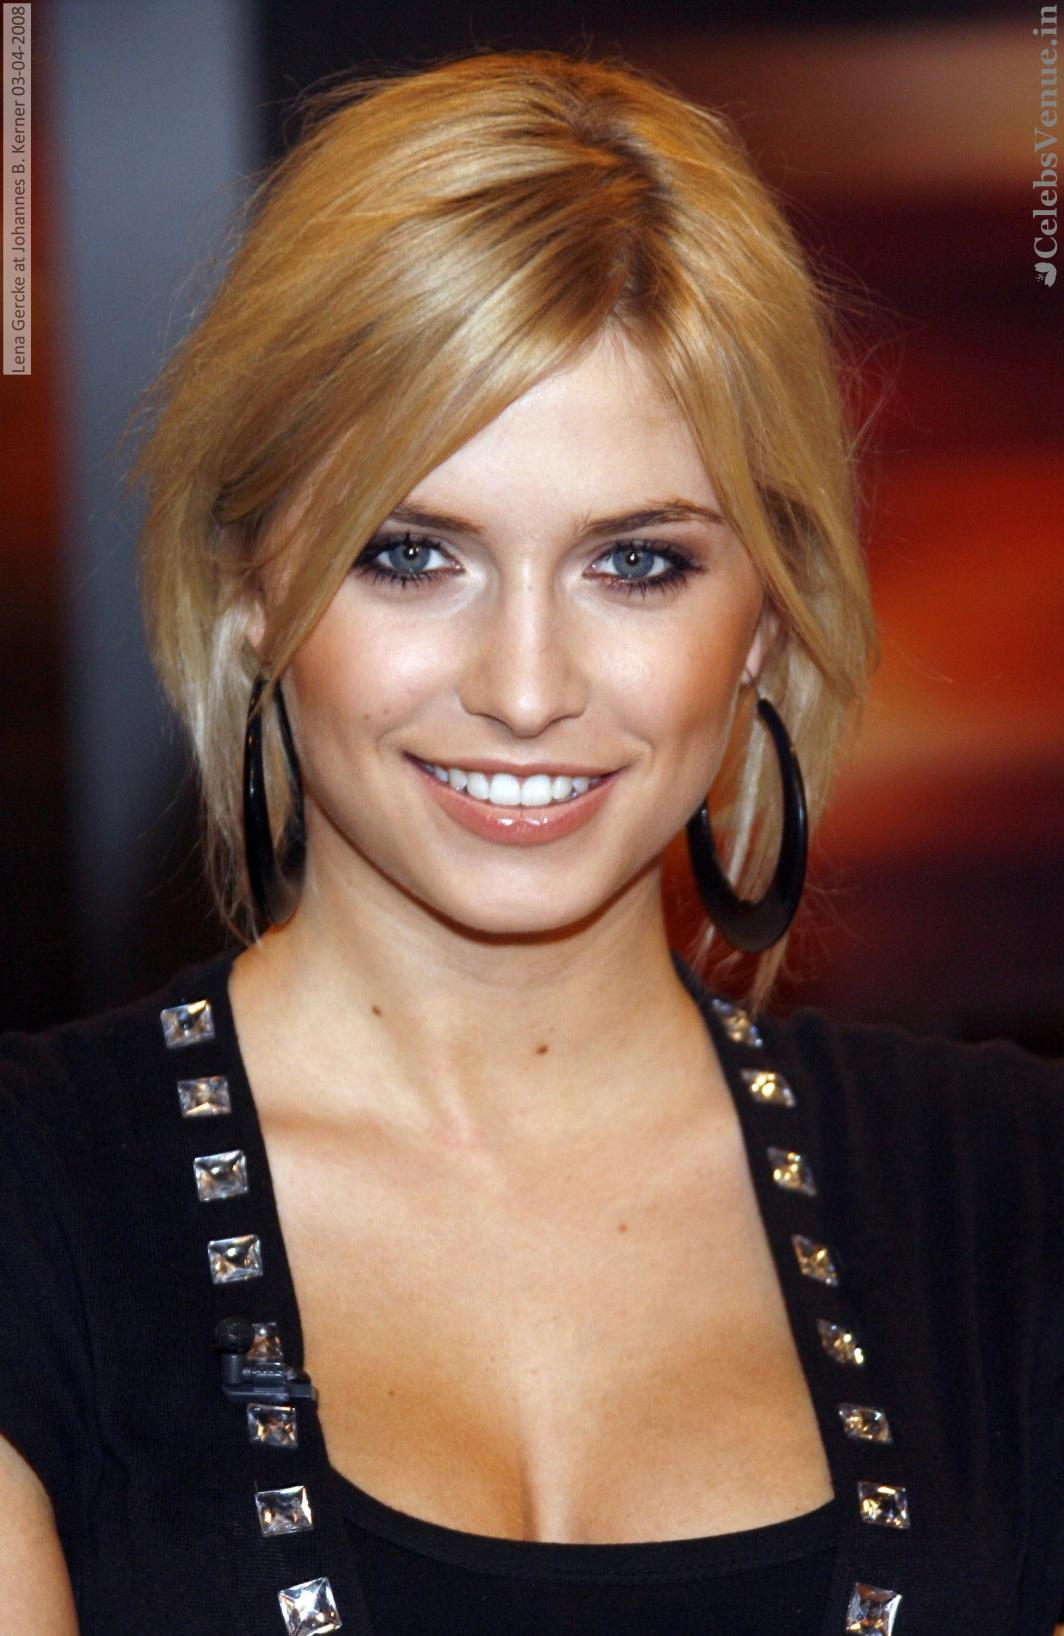 HQ Lena Gercke Wallpapers | File 162.54Kb